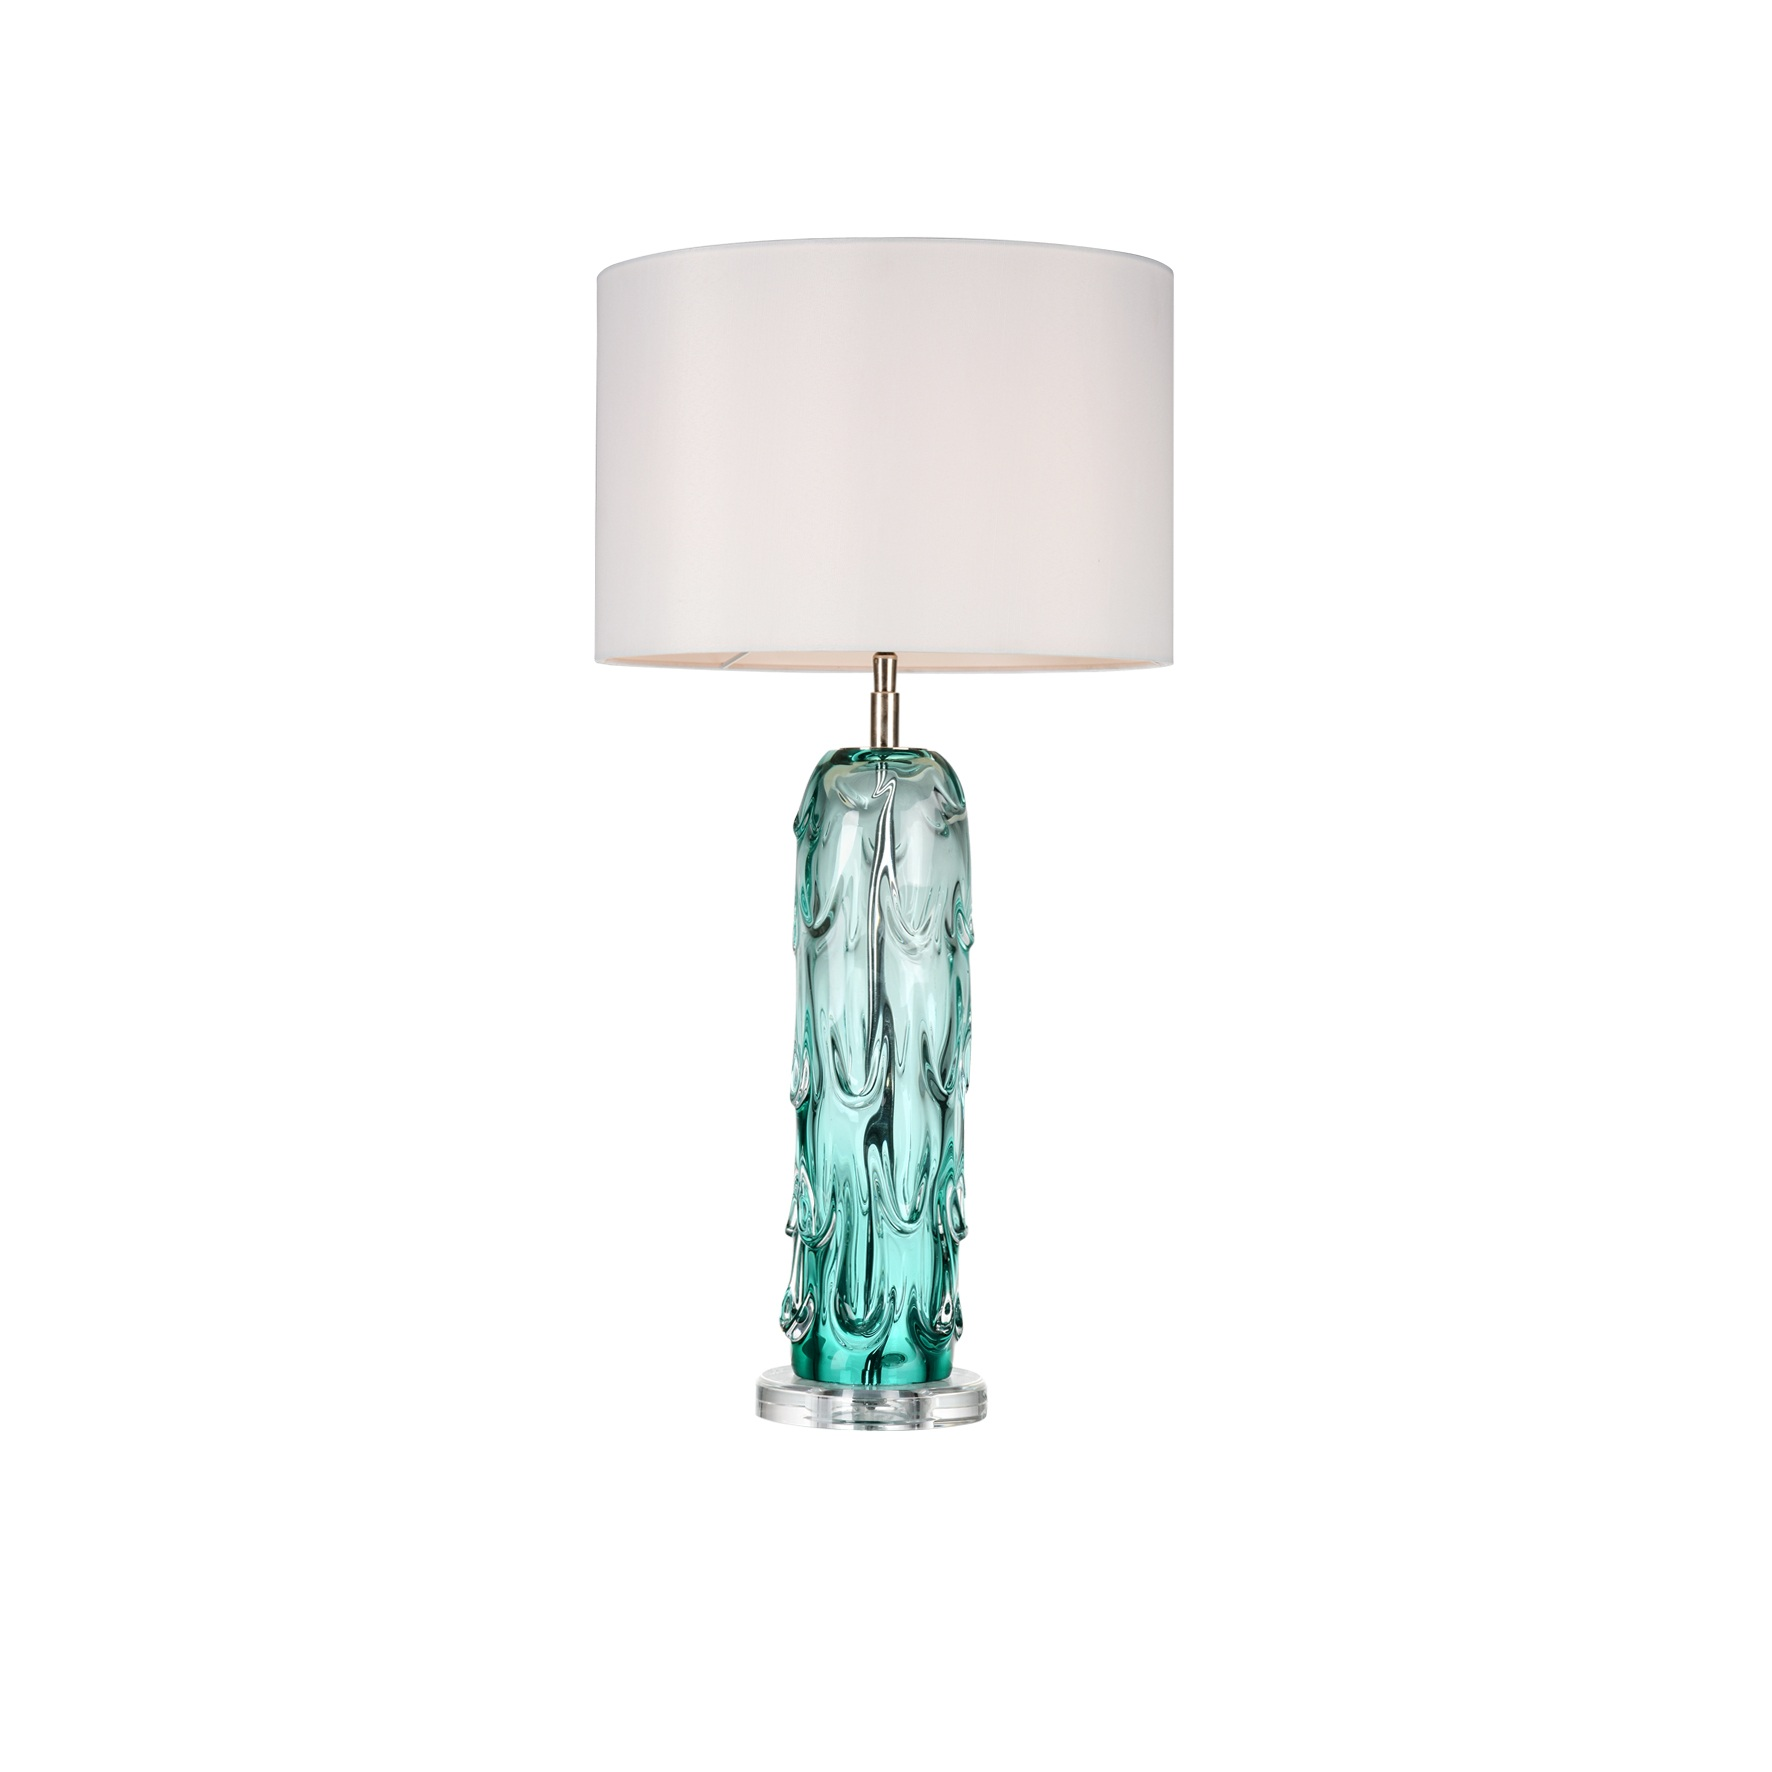 Crystal Table Lamp Green Blown Glass Table Lamps For Hotel Living Room With Fabric Shade Buy Crystal Side Table Lamps Hotel Glass Table Lamp Brown Glass Table Lamp Product On Alibaba Com